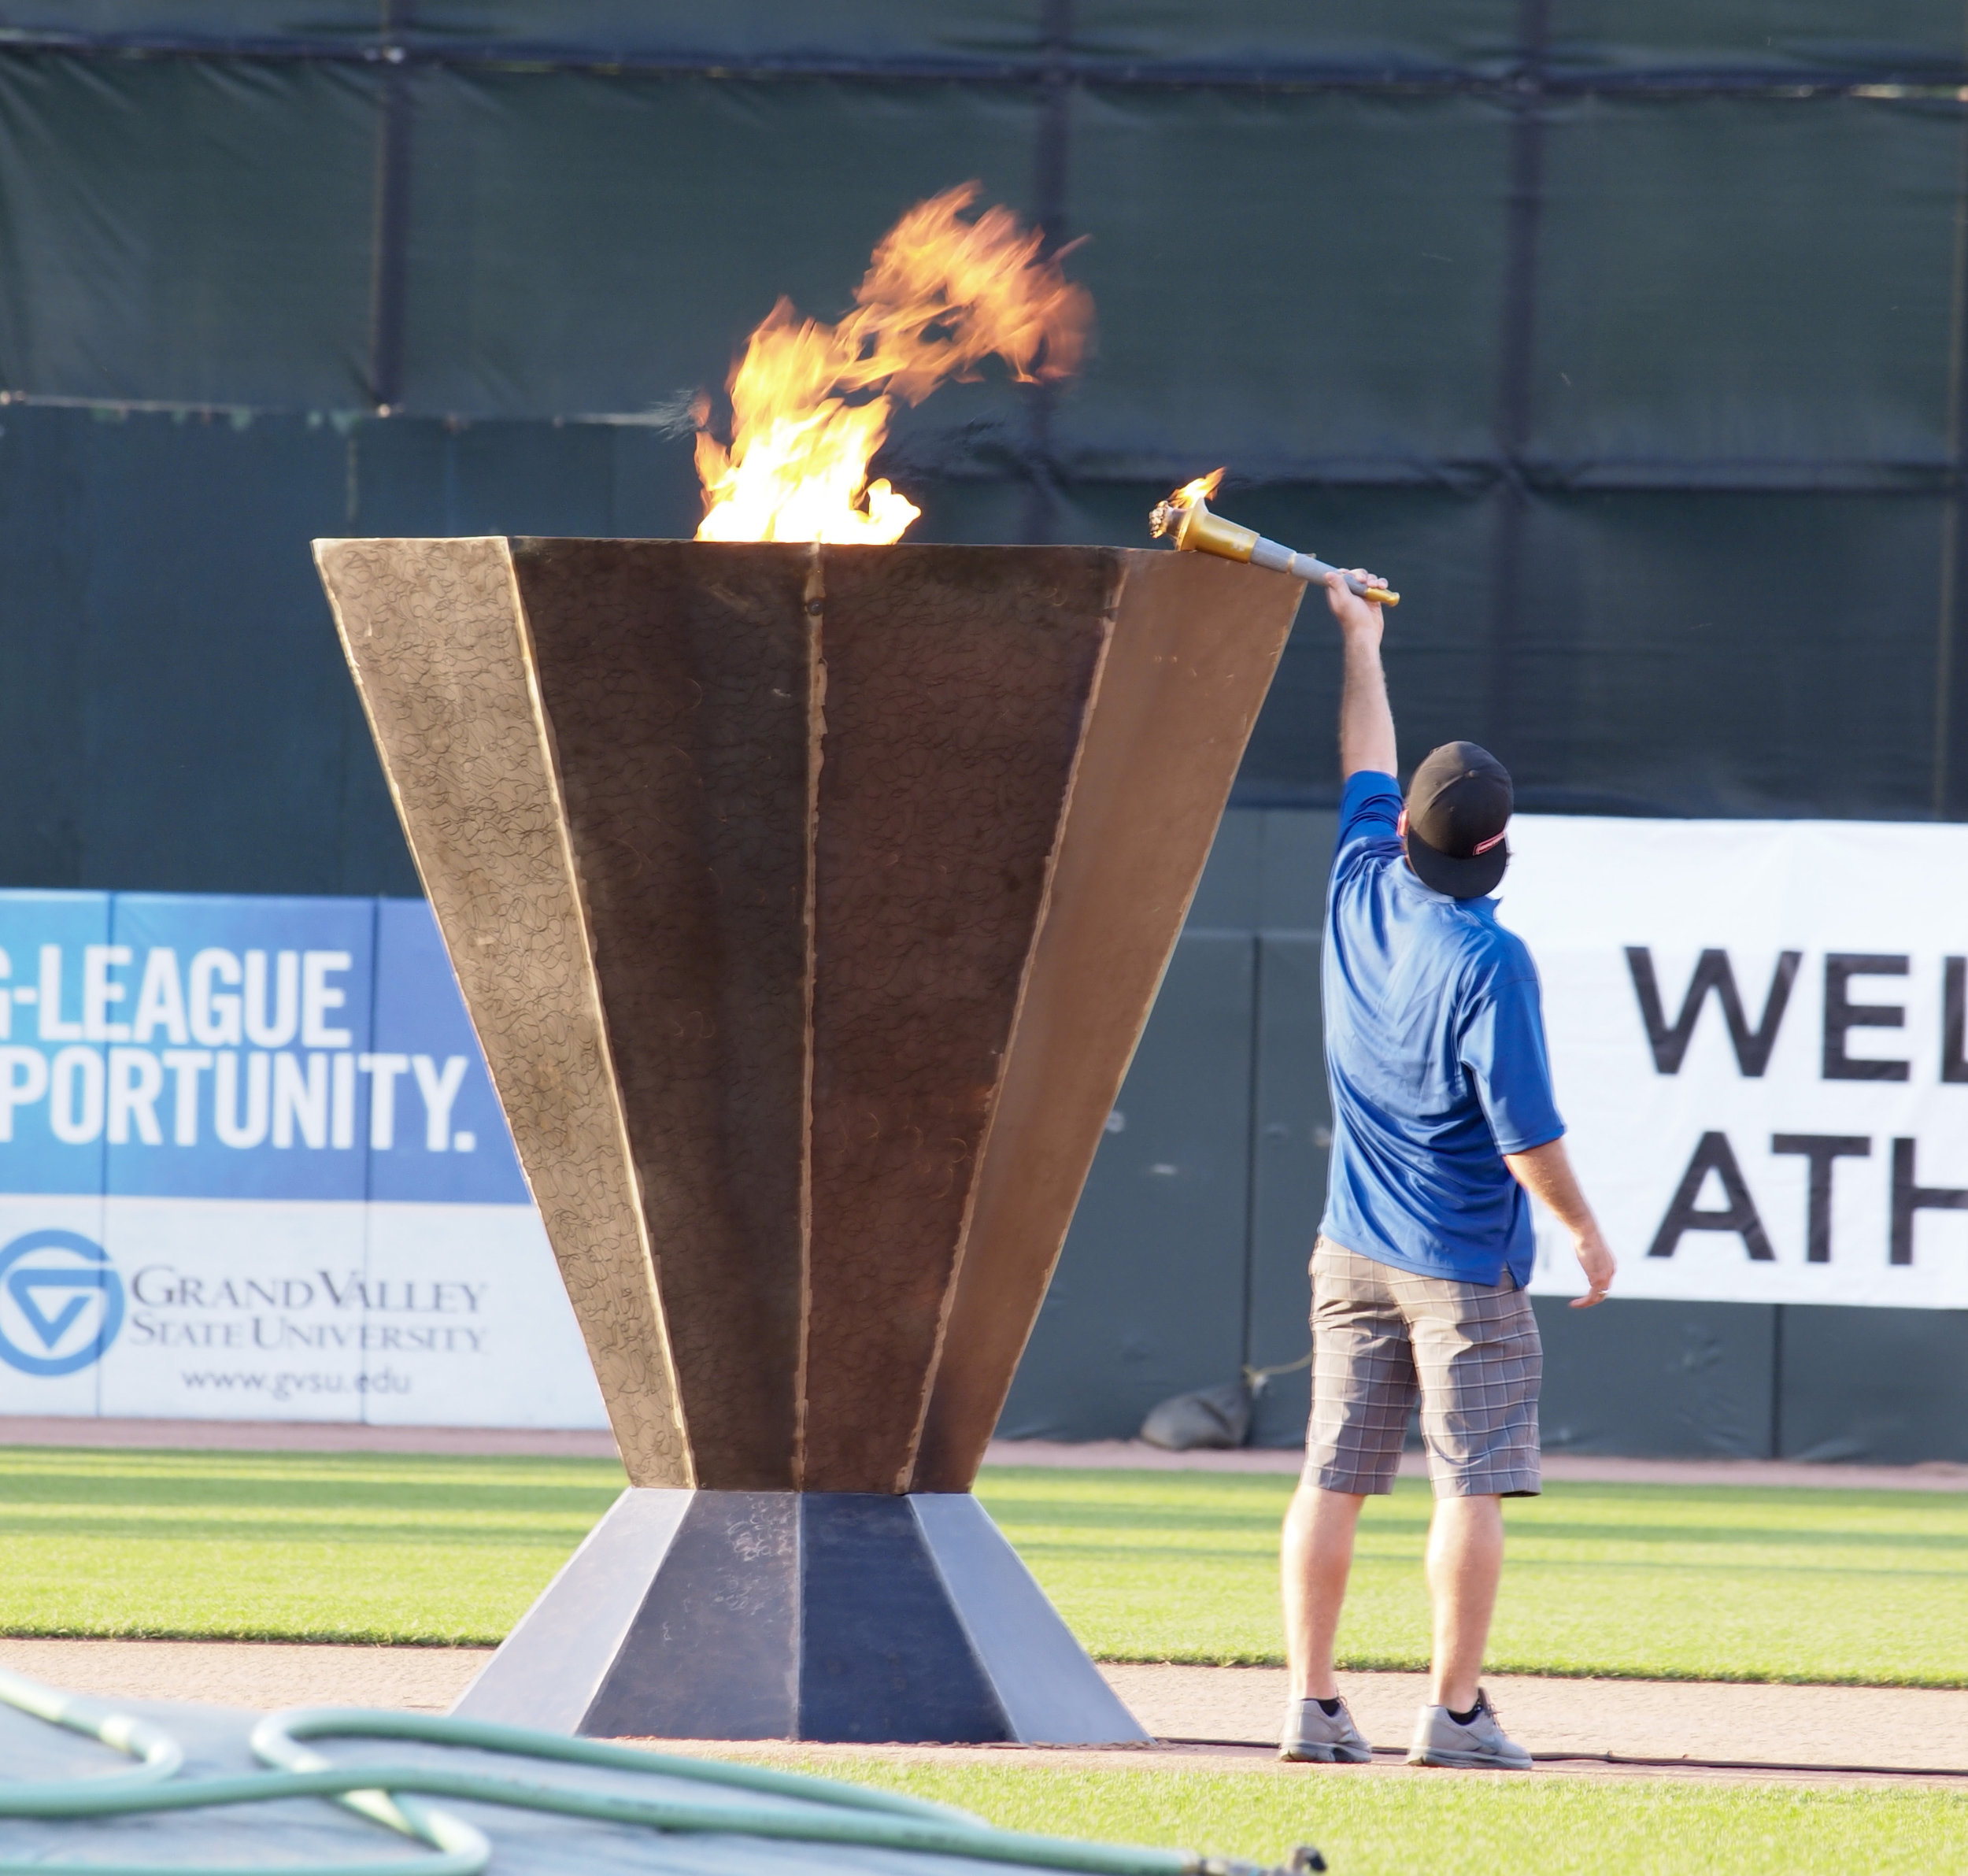 2019 Opening Ceremony - Join us June 21, 2019 at Fifth Third Ballpark. We will be celebrating the 10th Anniversary of the Meijer State Games of Michigan.Athletes will have the opportunity to represent their sport in the athlete parade. Learn more about Opening Ceremony.